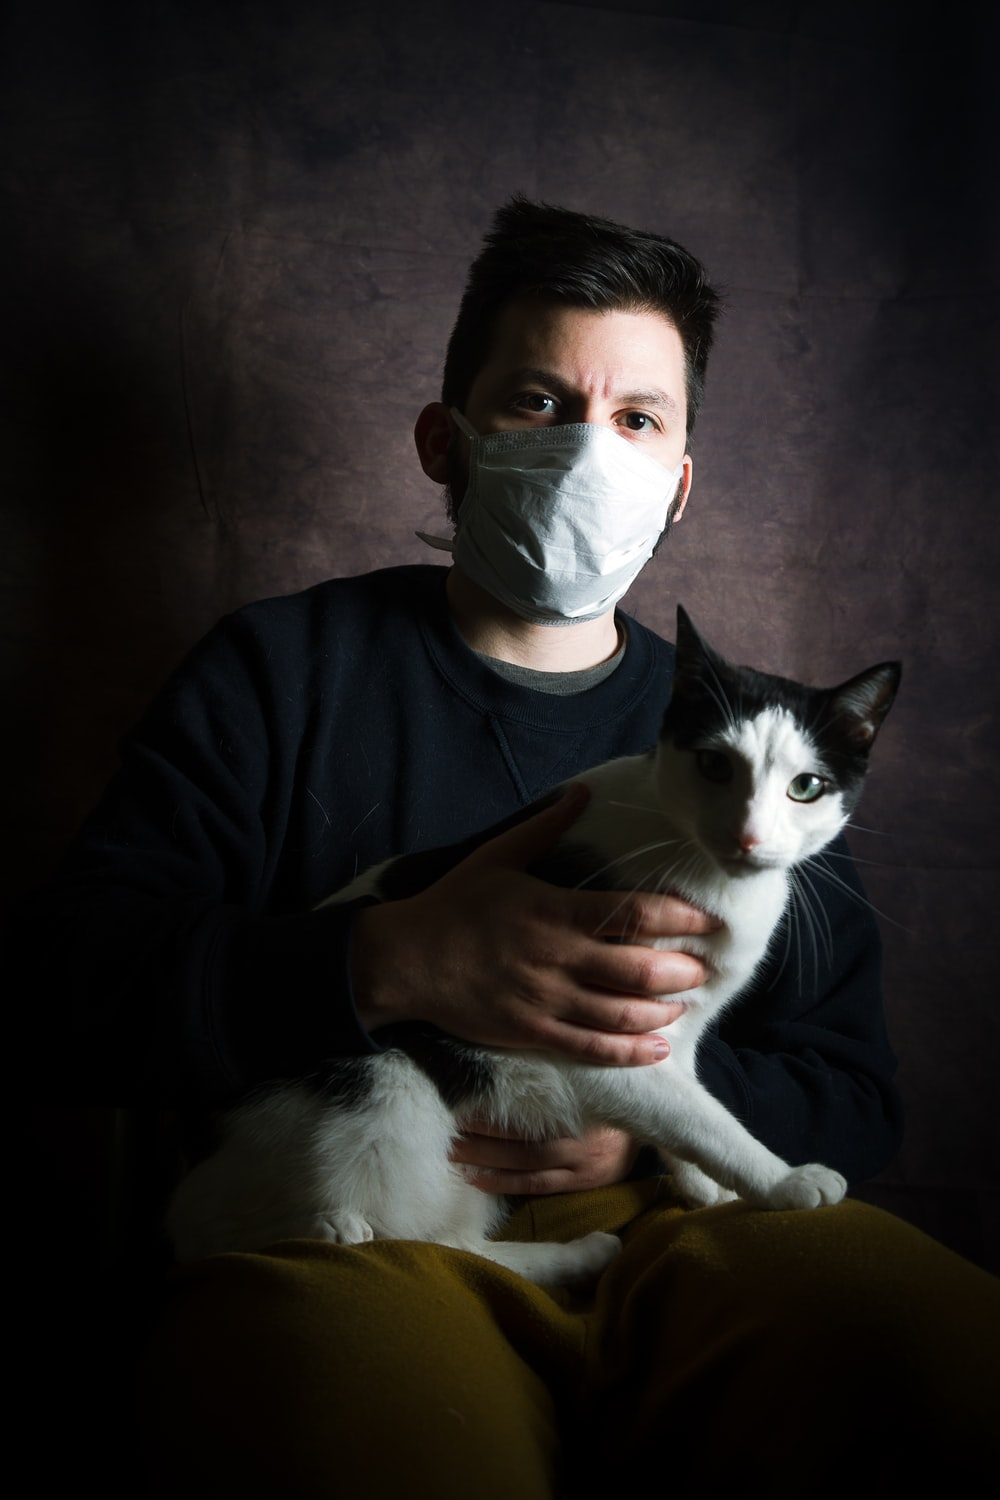 man in black long sleeve shirt holding white and black cat